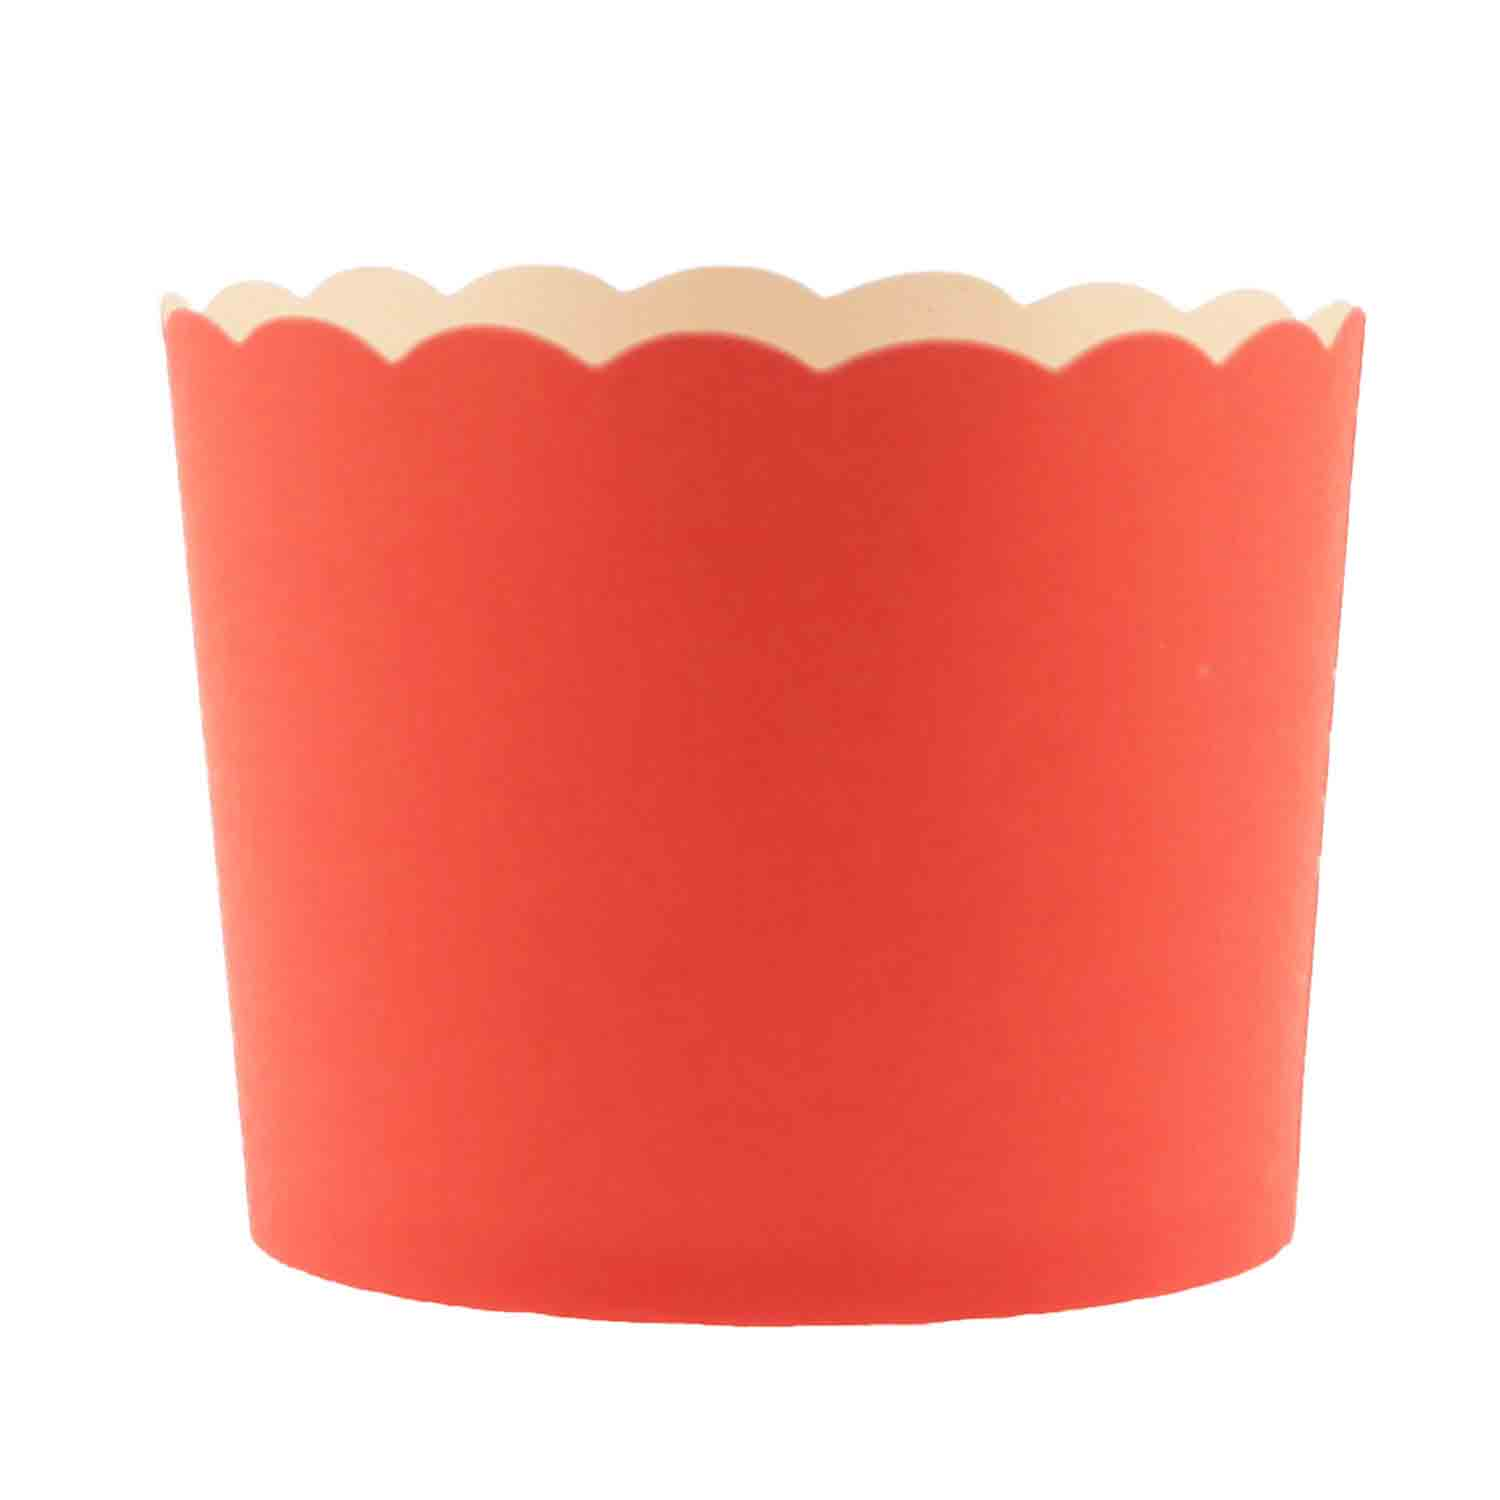 Red Bake In Cups - Lg